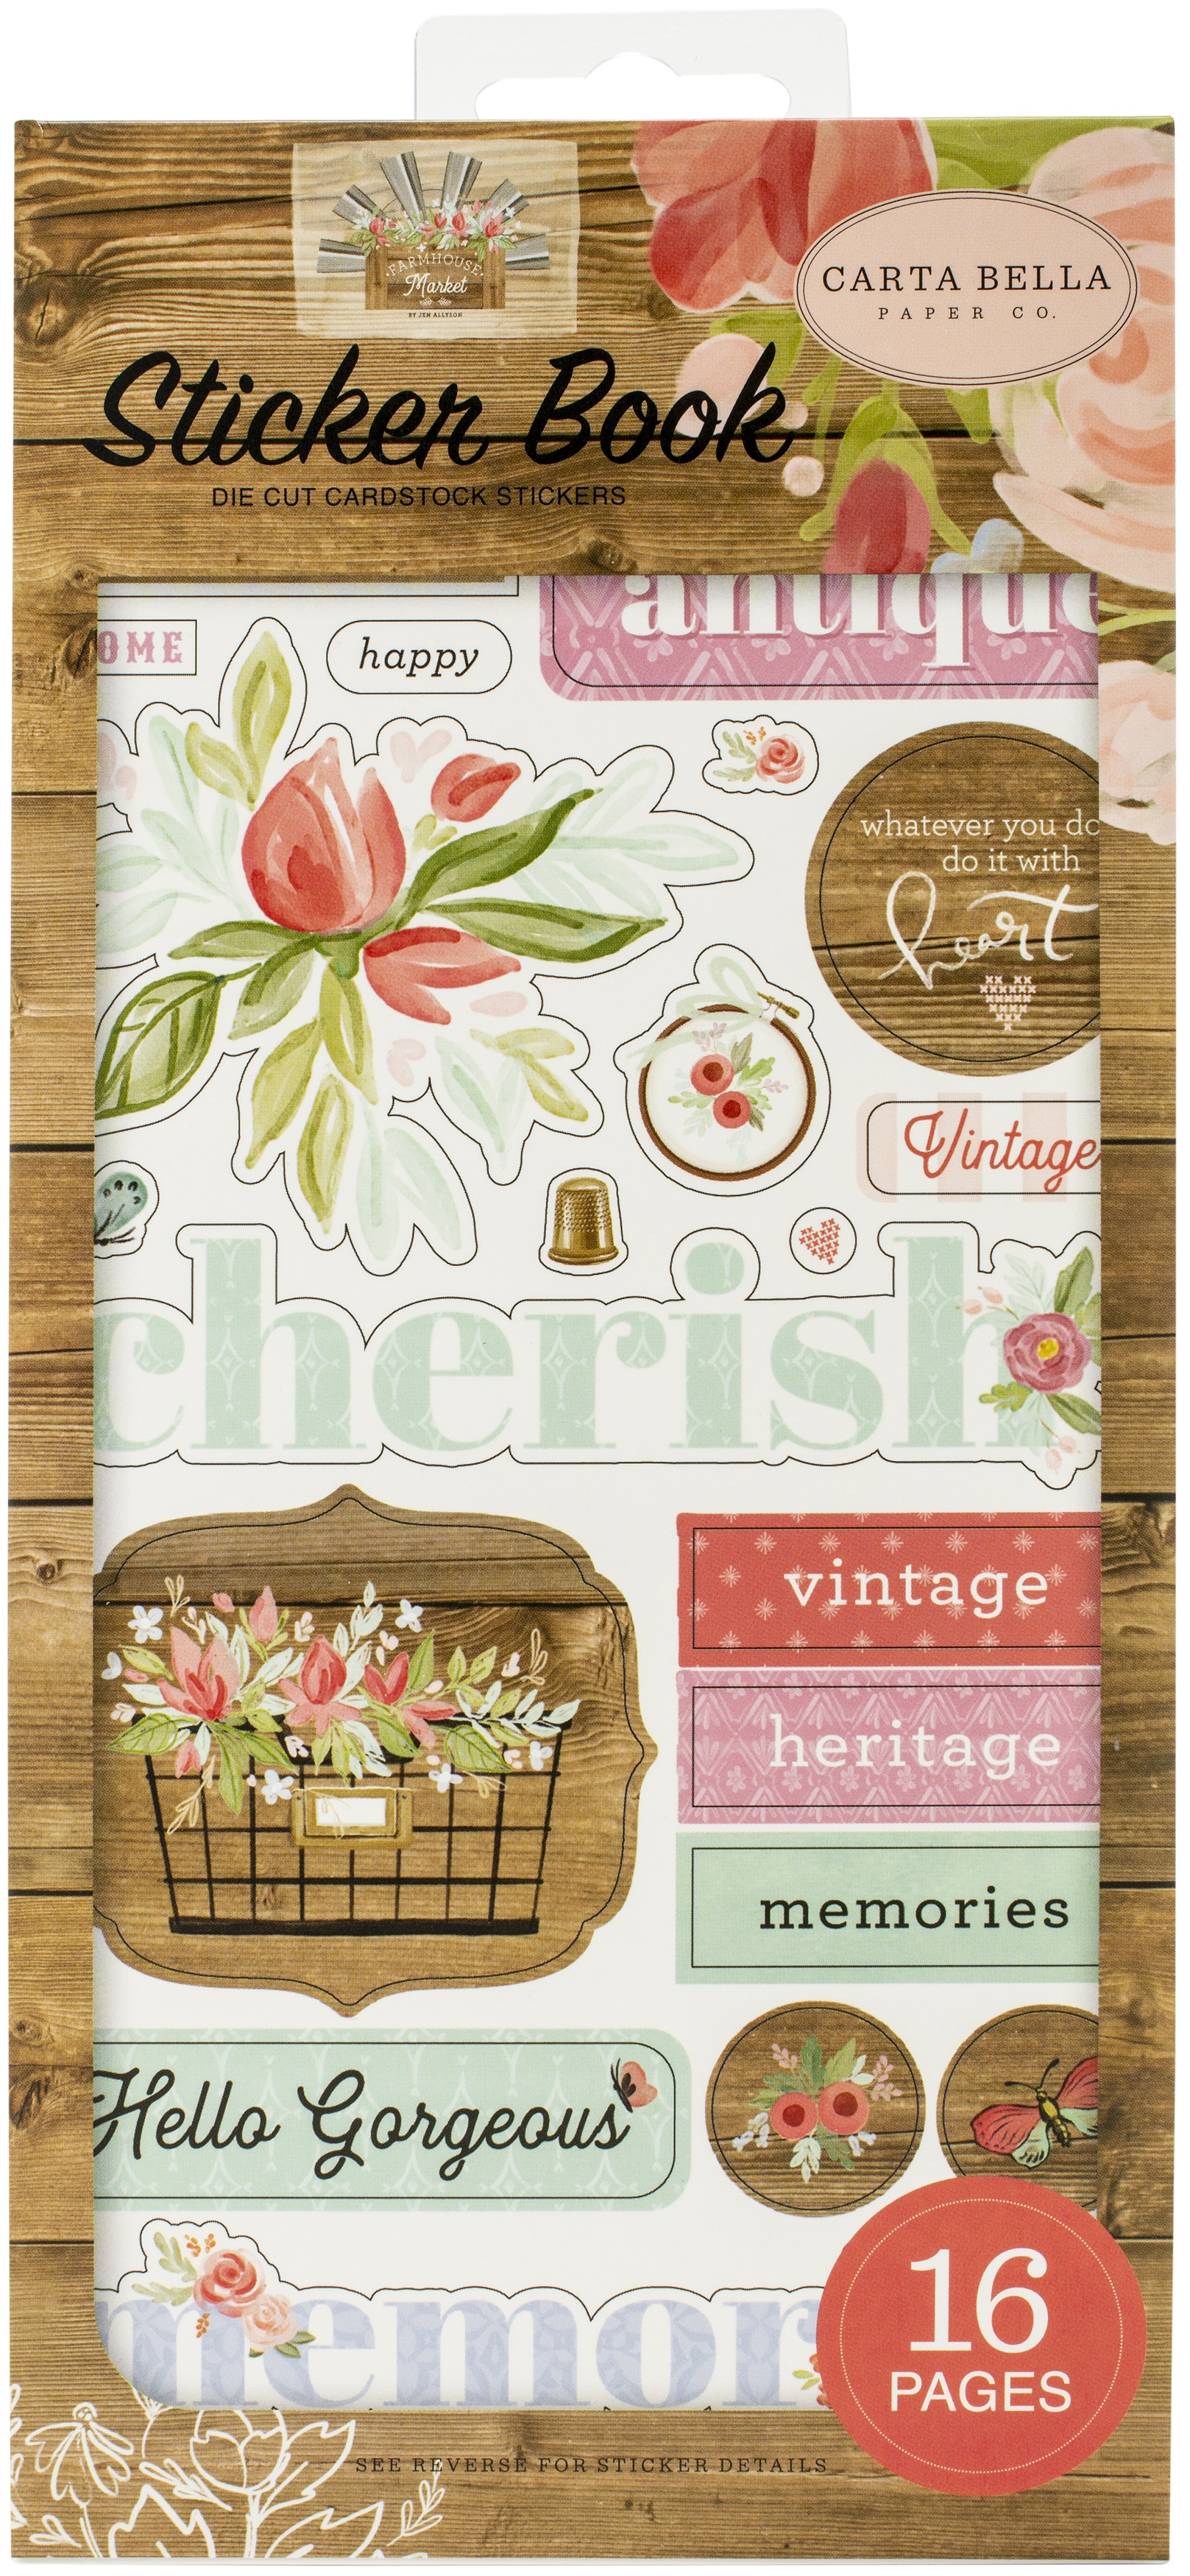 Carta Bella Sticker Book-Farmhouse Market